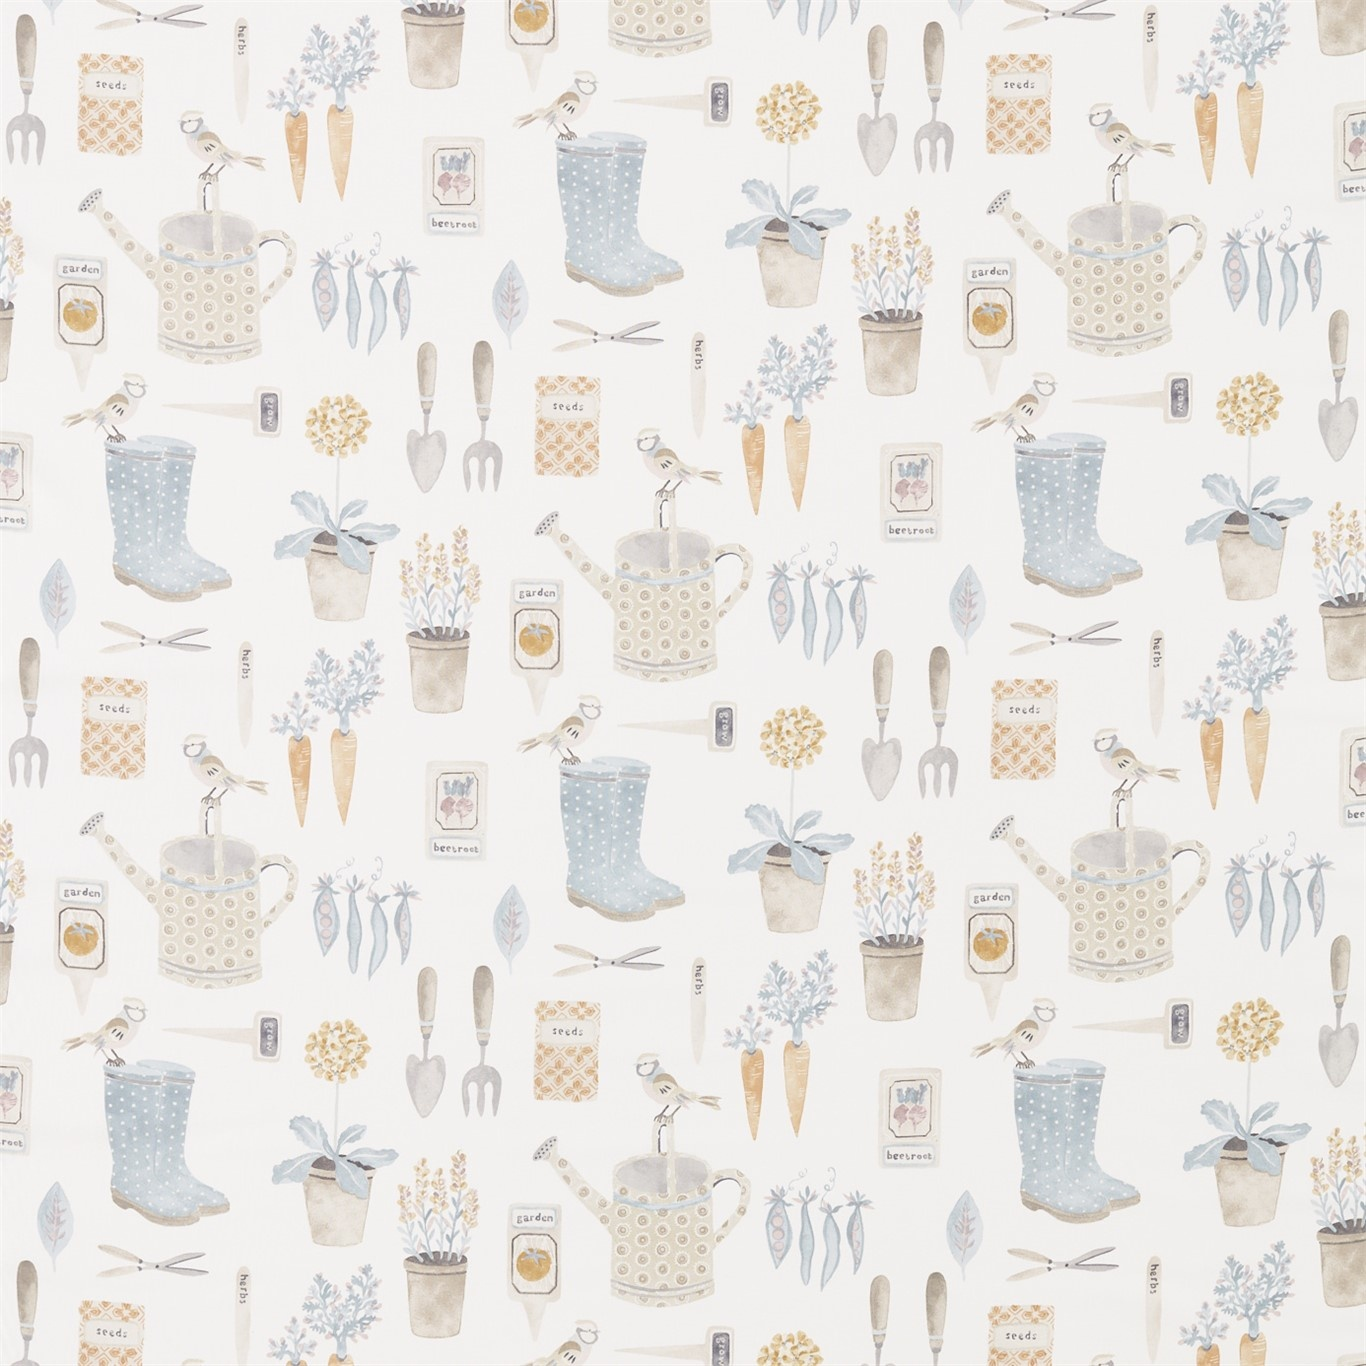 Image of Sanderson Home The Gardener Stone Fabric 226349